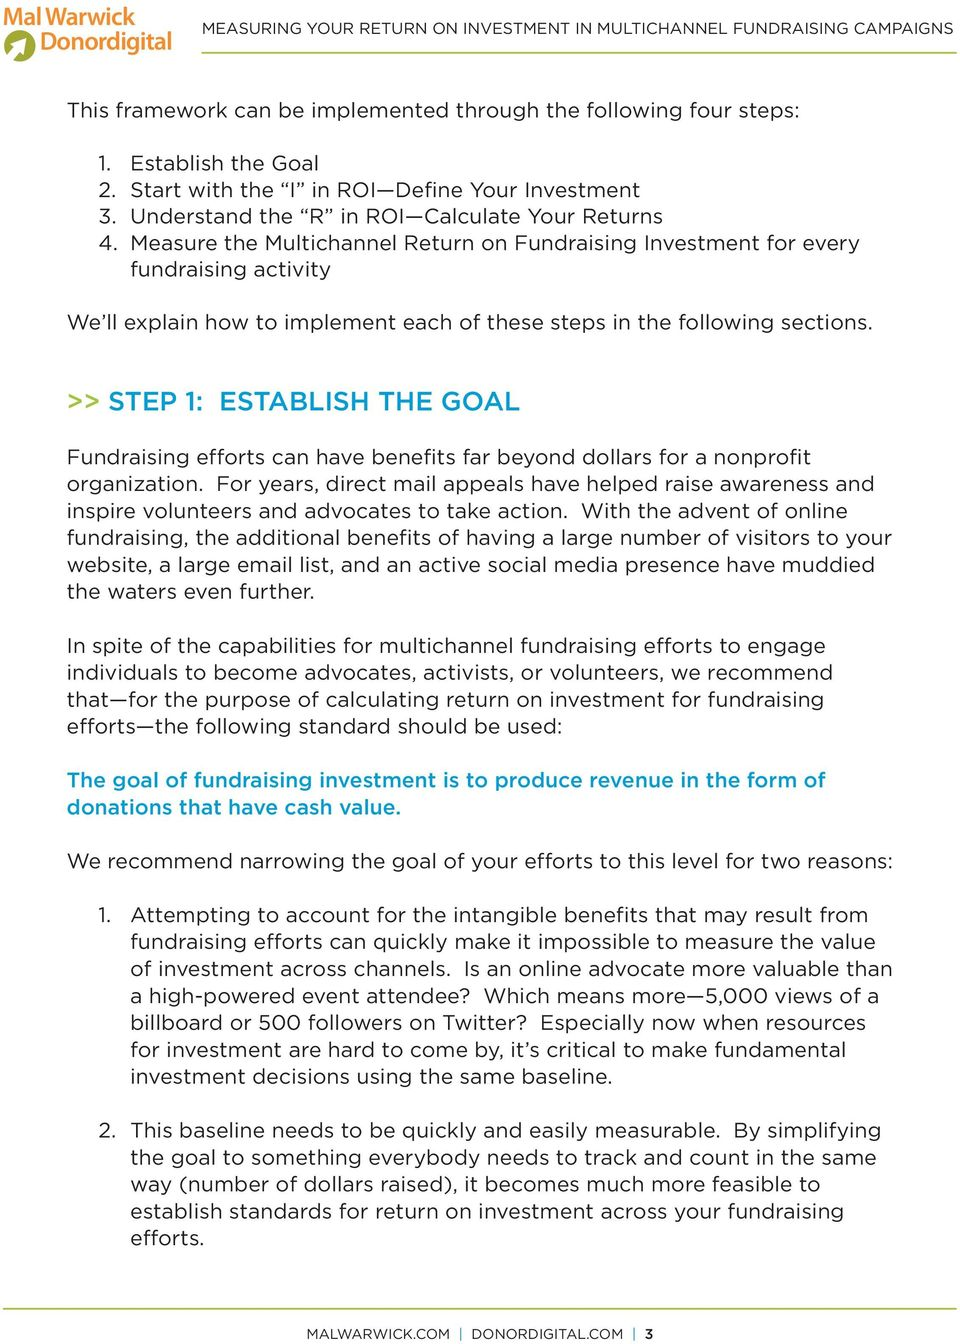 >> STEP 1: ESTABLISH THE GOAL fundraising efforts can have benefits far beyond dollars for a nonprofit organization.